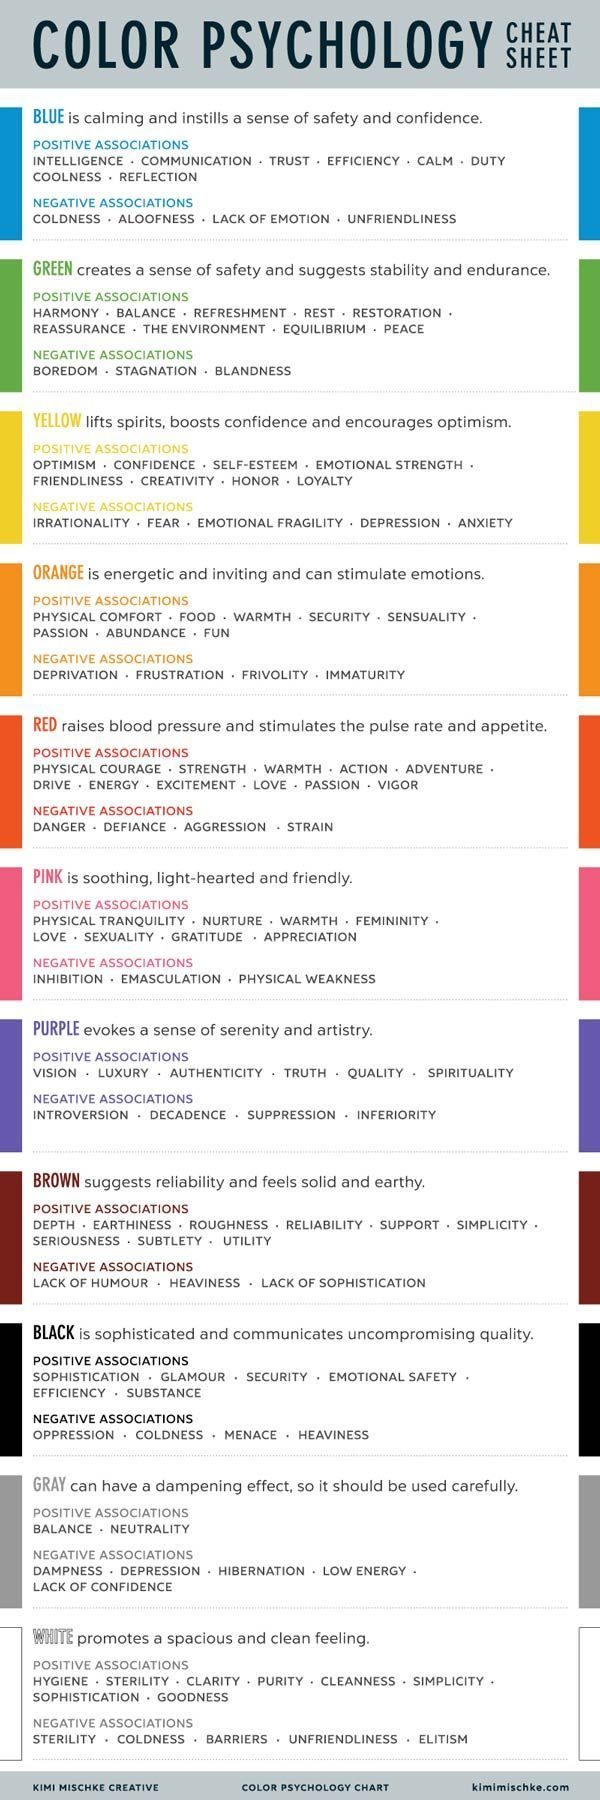 general psychology cheat sheet Mcat organic chemistry – core concept cheat sheet 01: introduction to organic chemistry in mcat key mcat terms mcat: general chemistry.